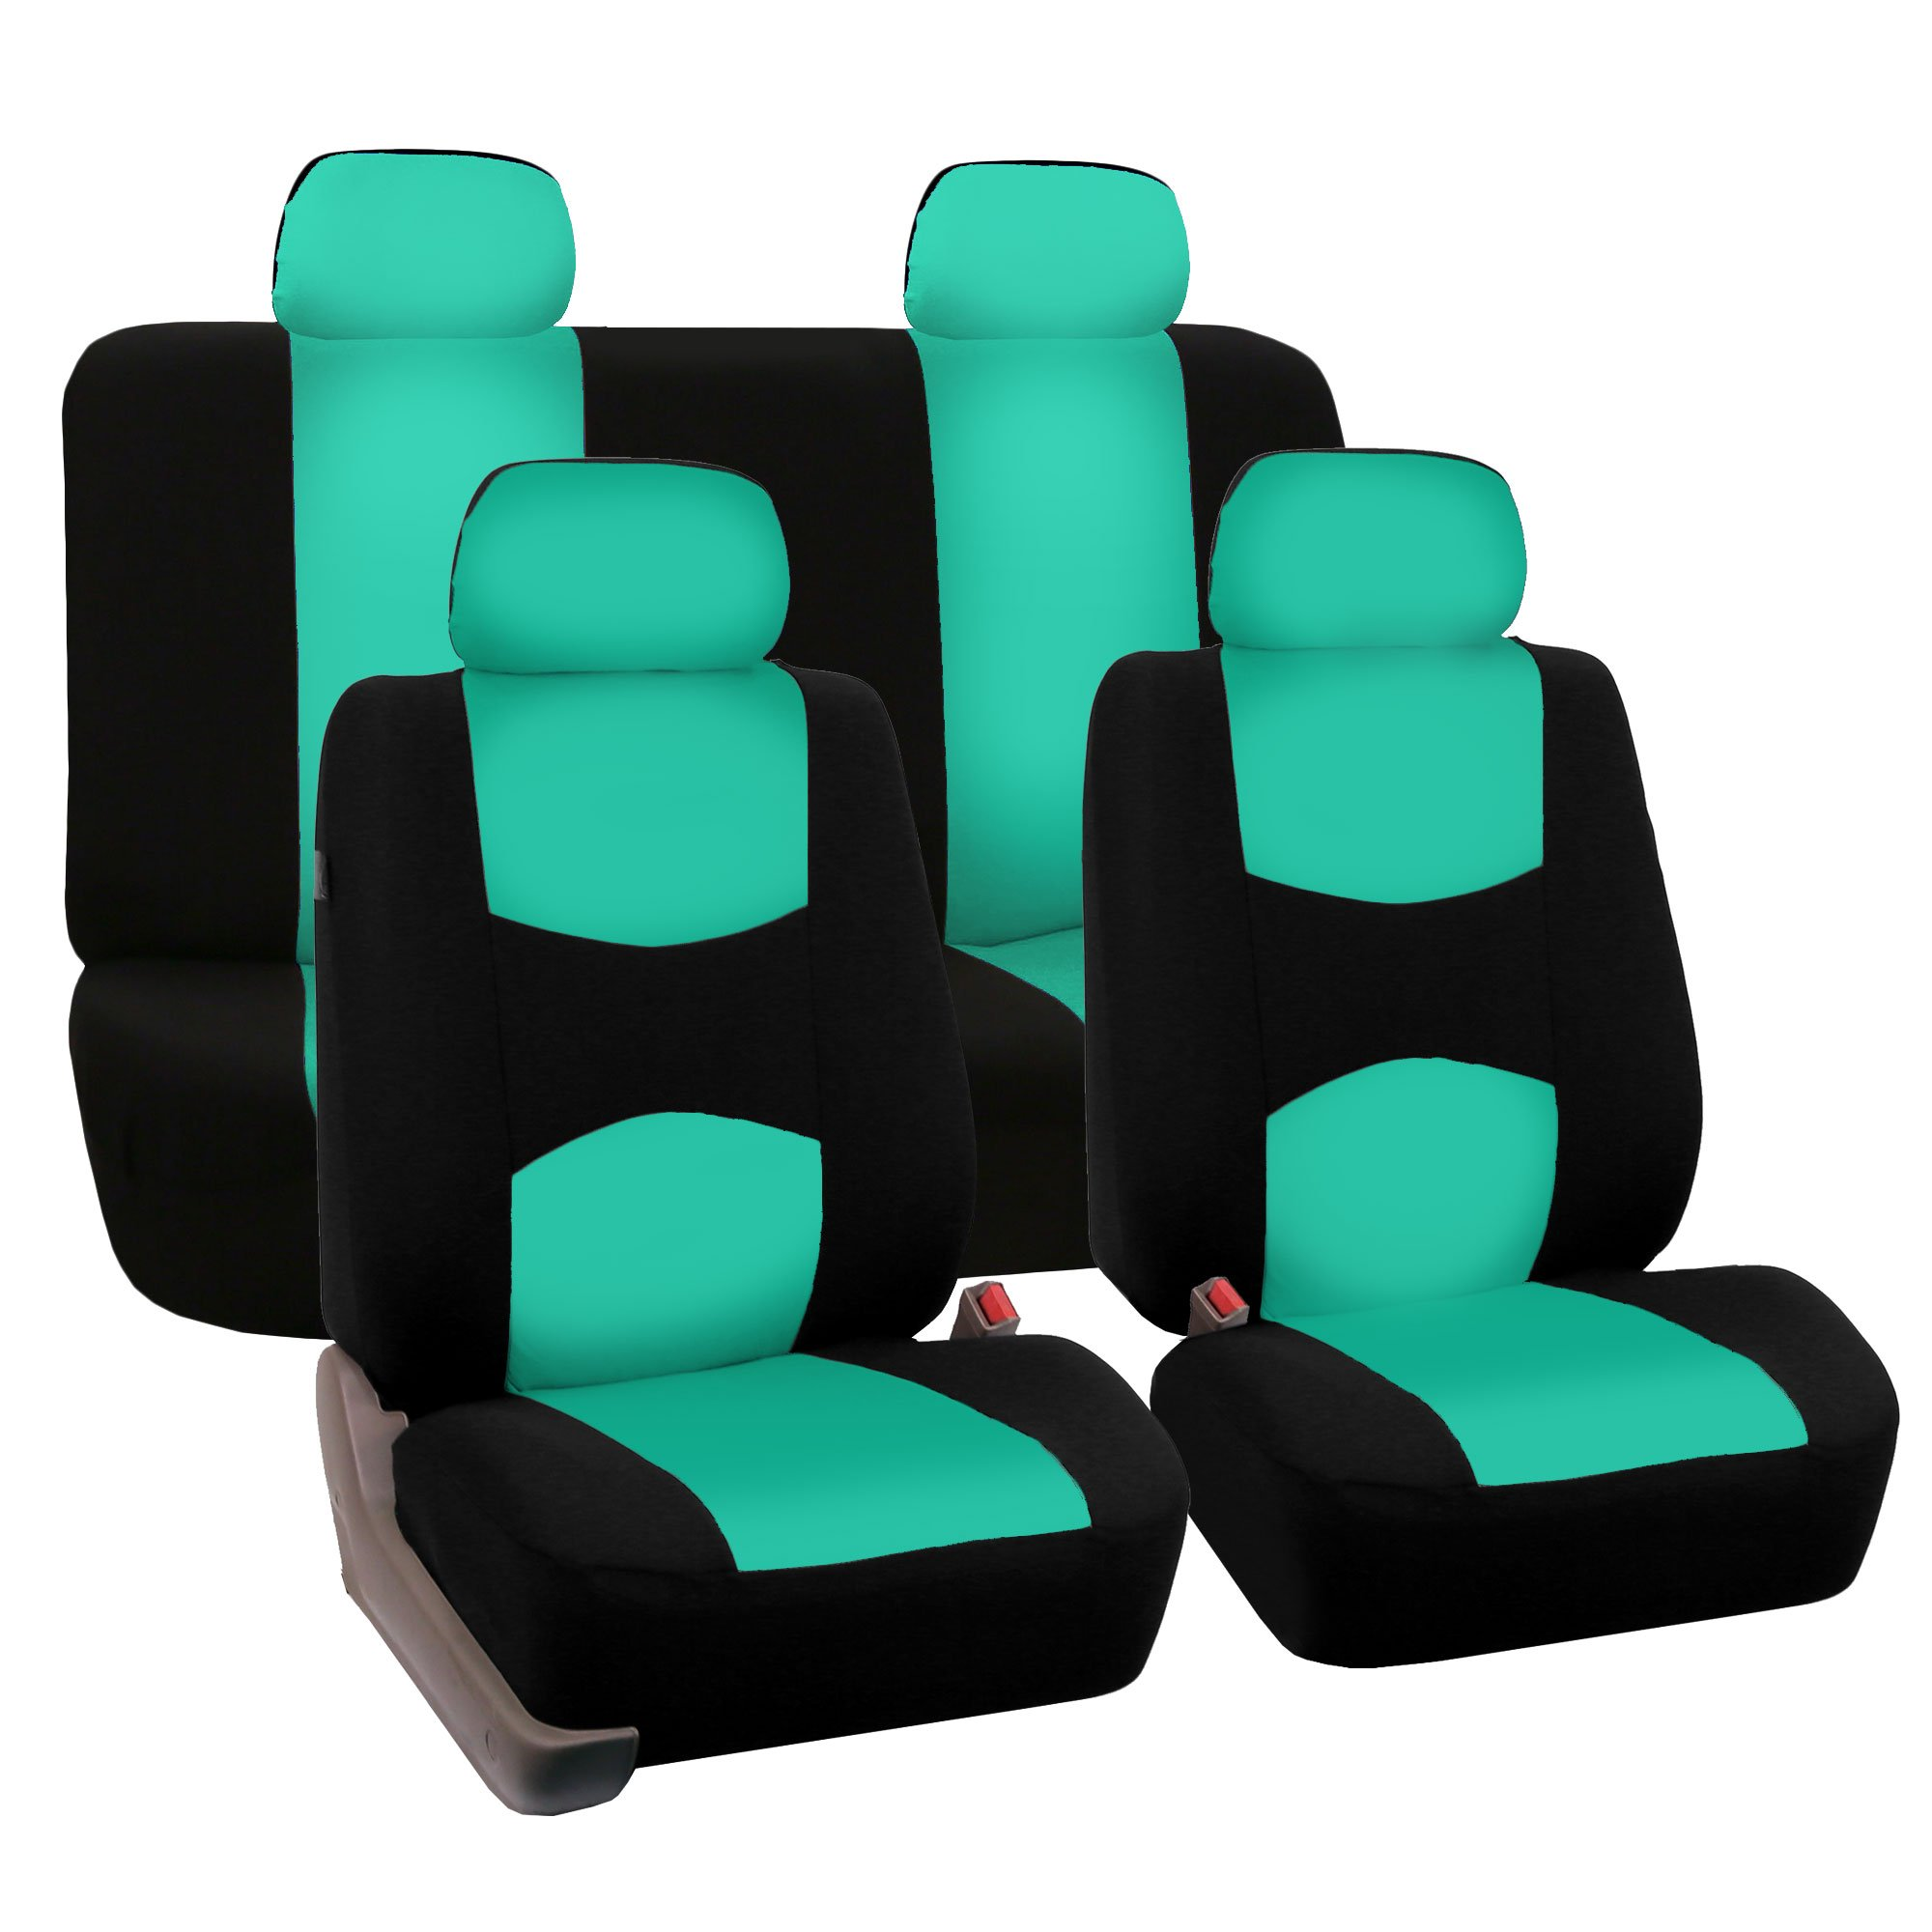 FH Group Mint FB050MINT114 Flat Cloth Fulls Set Seat Covers (w. 4 Detachable Headrests and Solid Bench) by FH Group